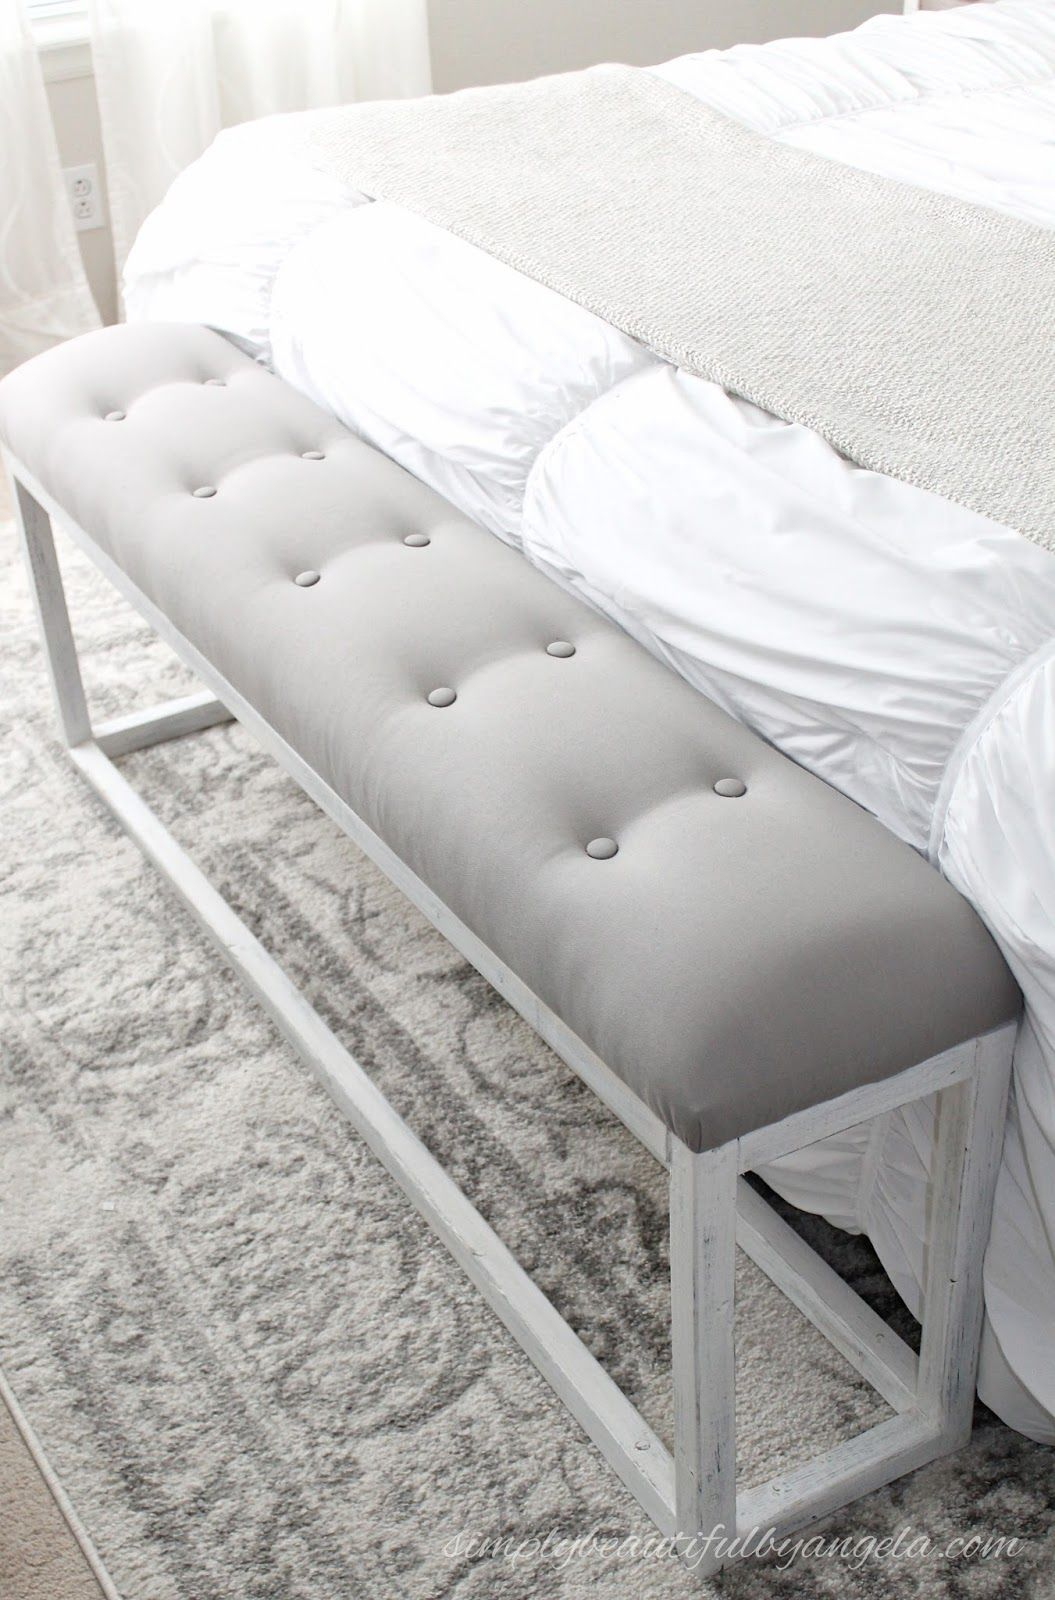 Diy Simple End Of Bed Bench Bedroom Bench Diy End Of Bed Bench